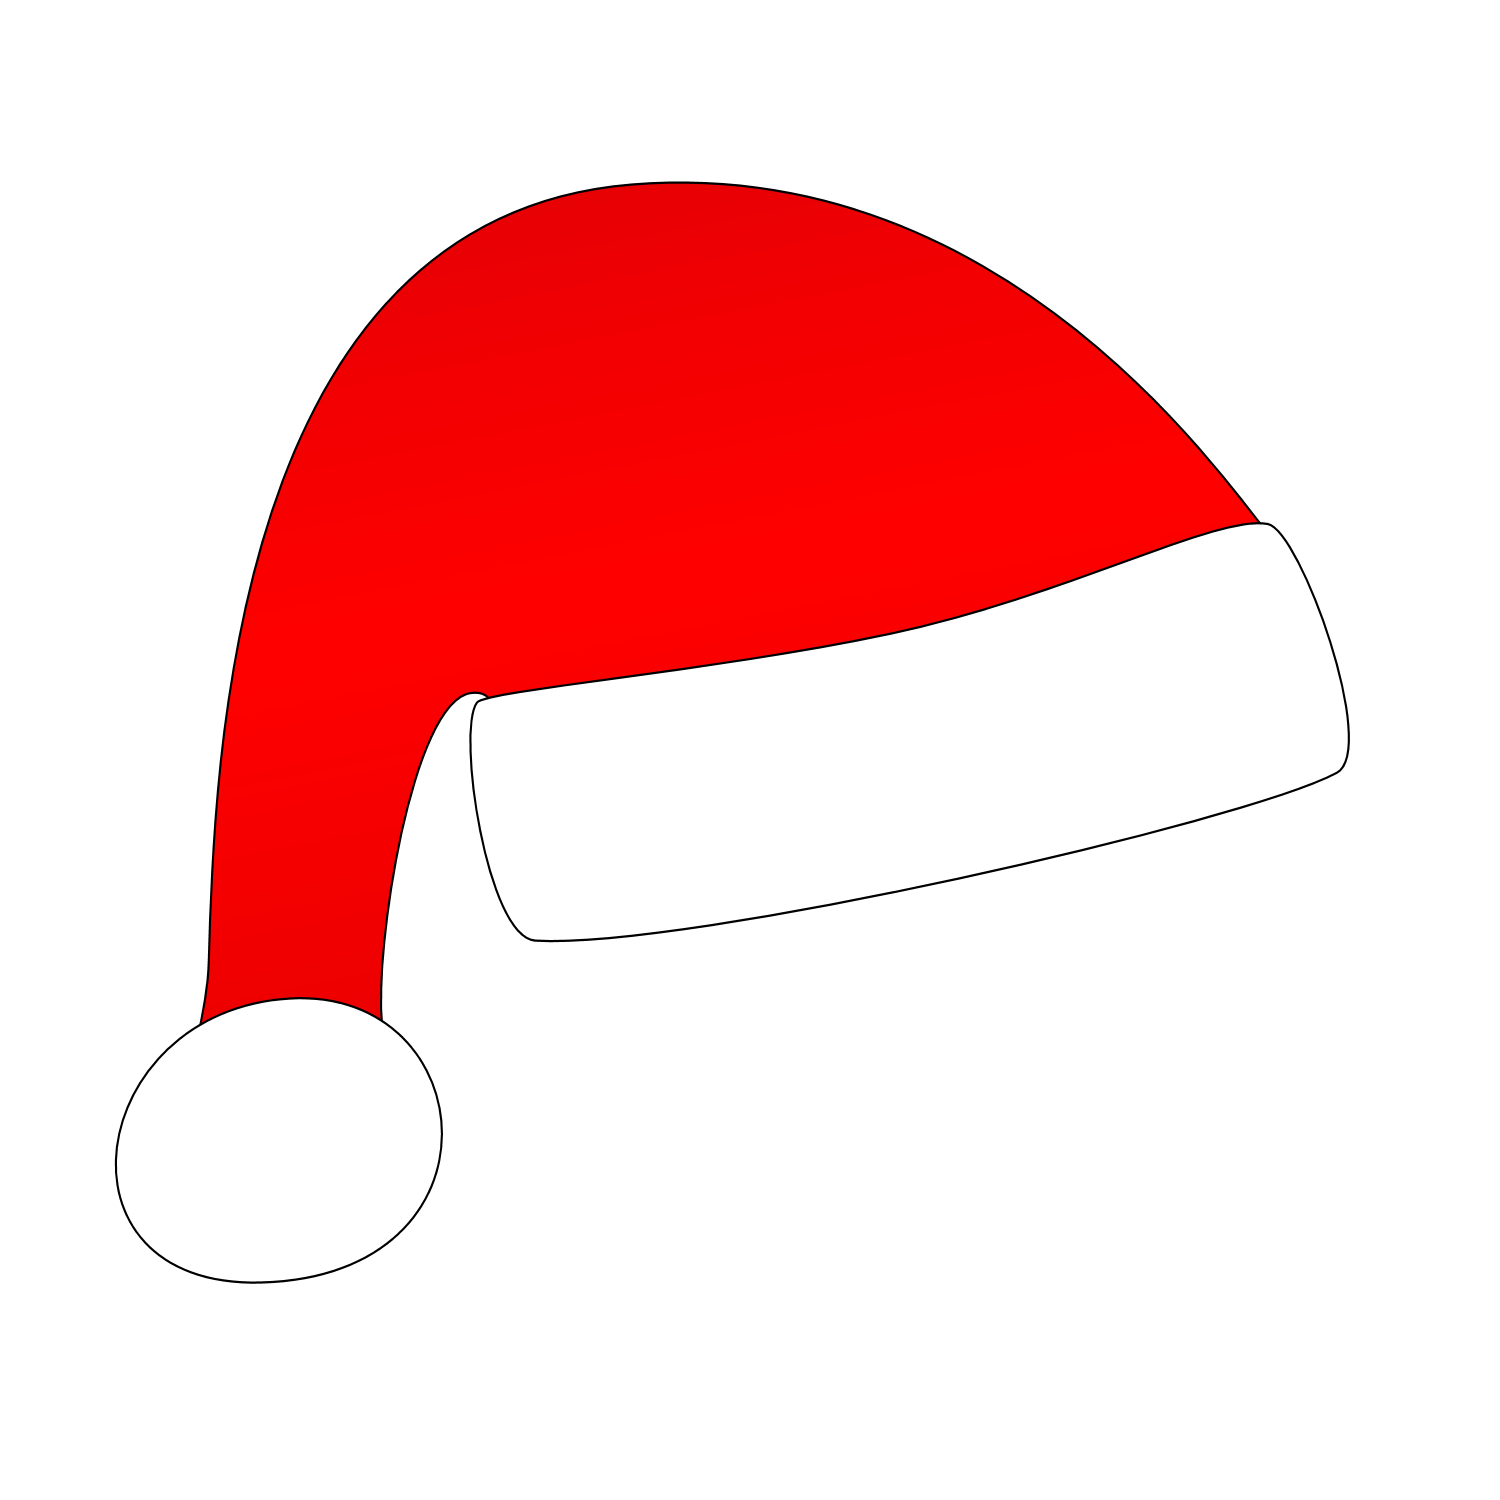 collection of santa. Western clipart ten gallon hat clip art free download